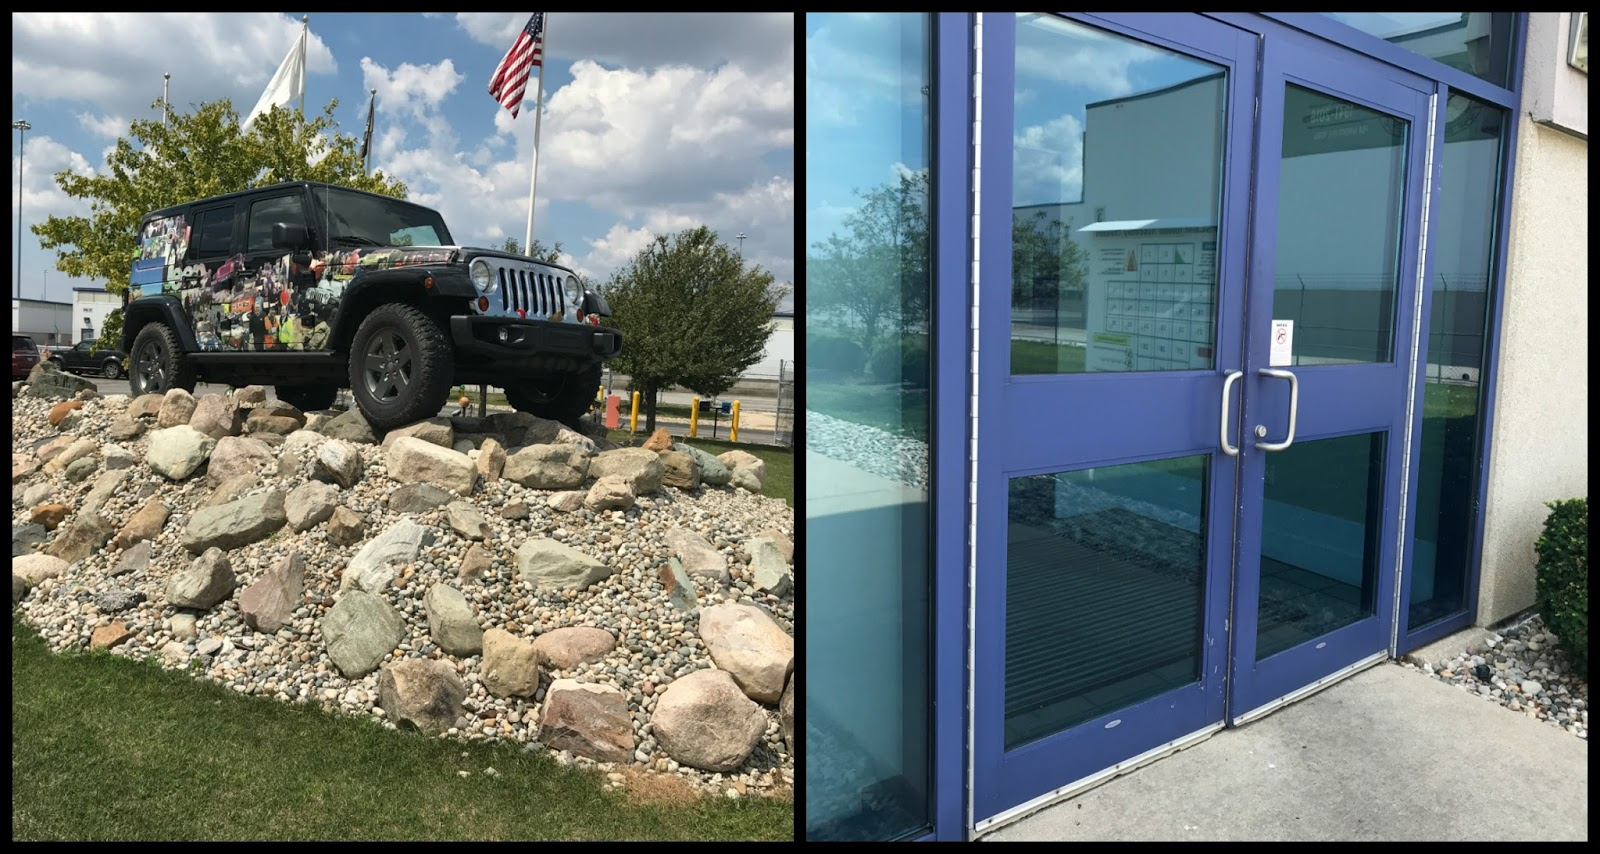 Jeep Wrangler Assembly Plant Tour Under The Sun Inserts Film A Black And Purple Doors Greeted Me Perfect Welcome For Once Inside I Needed To Watch Safety Video